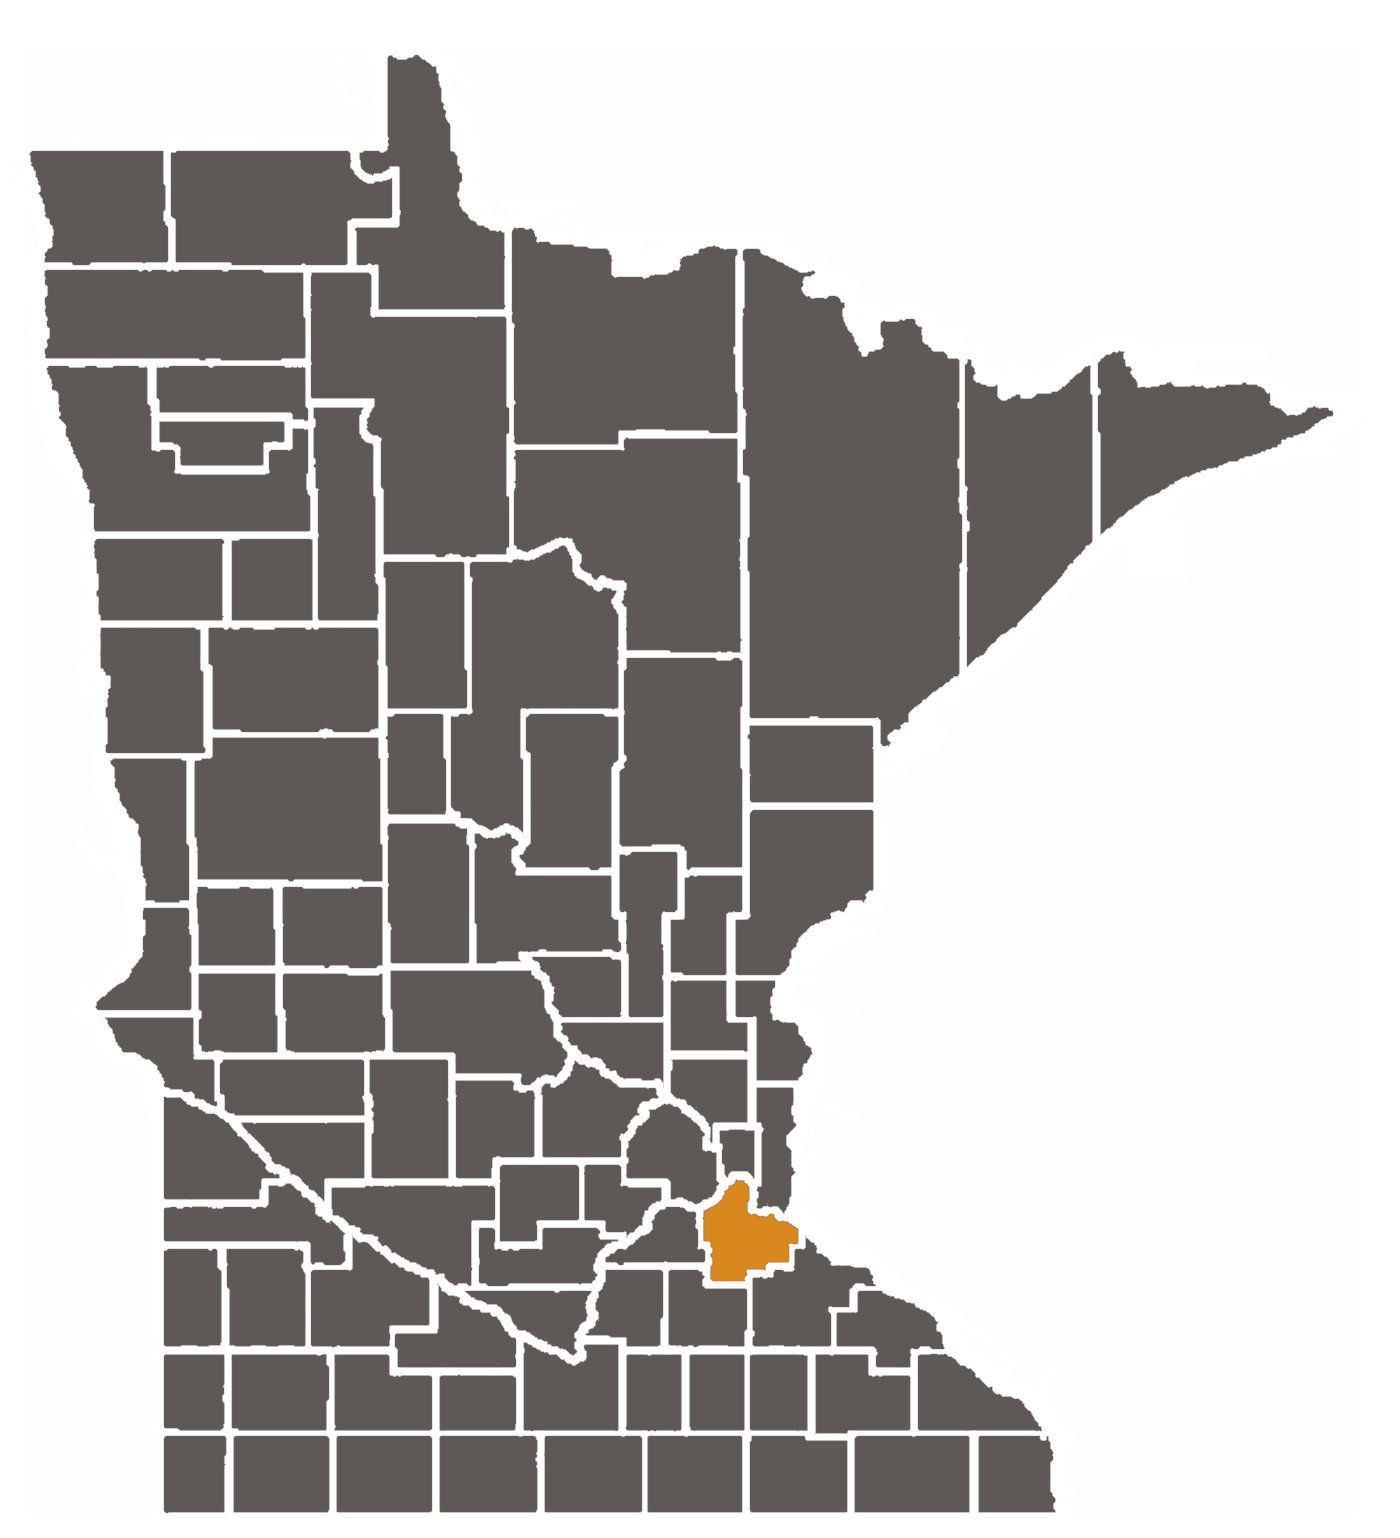 Minnesota map with Dakota County highlighted.